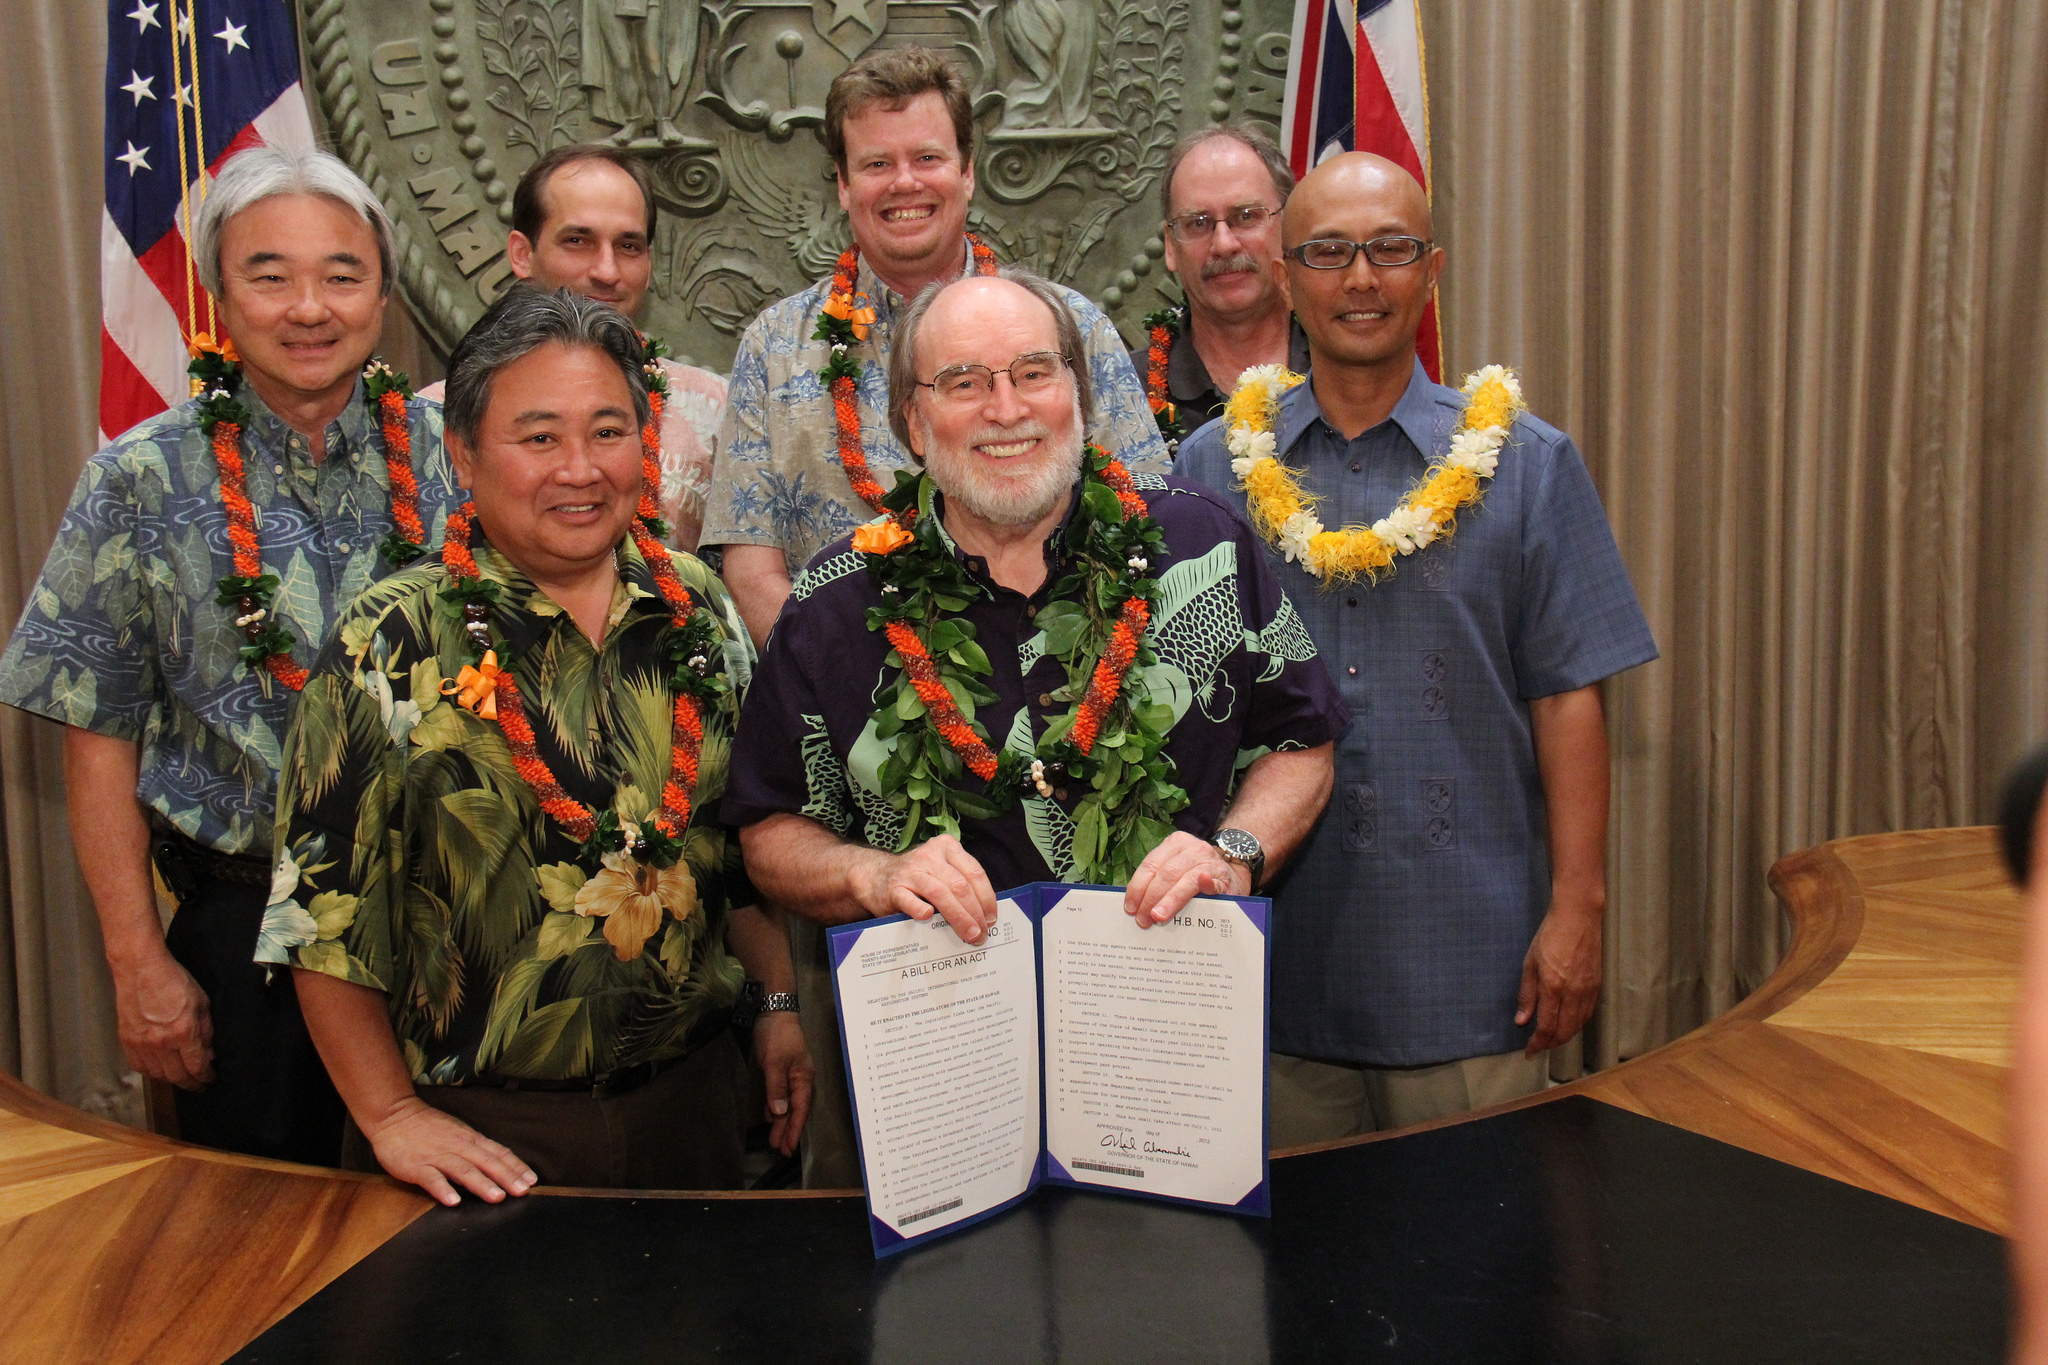 Hawaii gov signs energy bills, includes inter-island cable